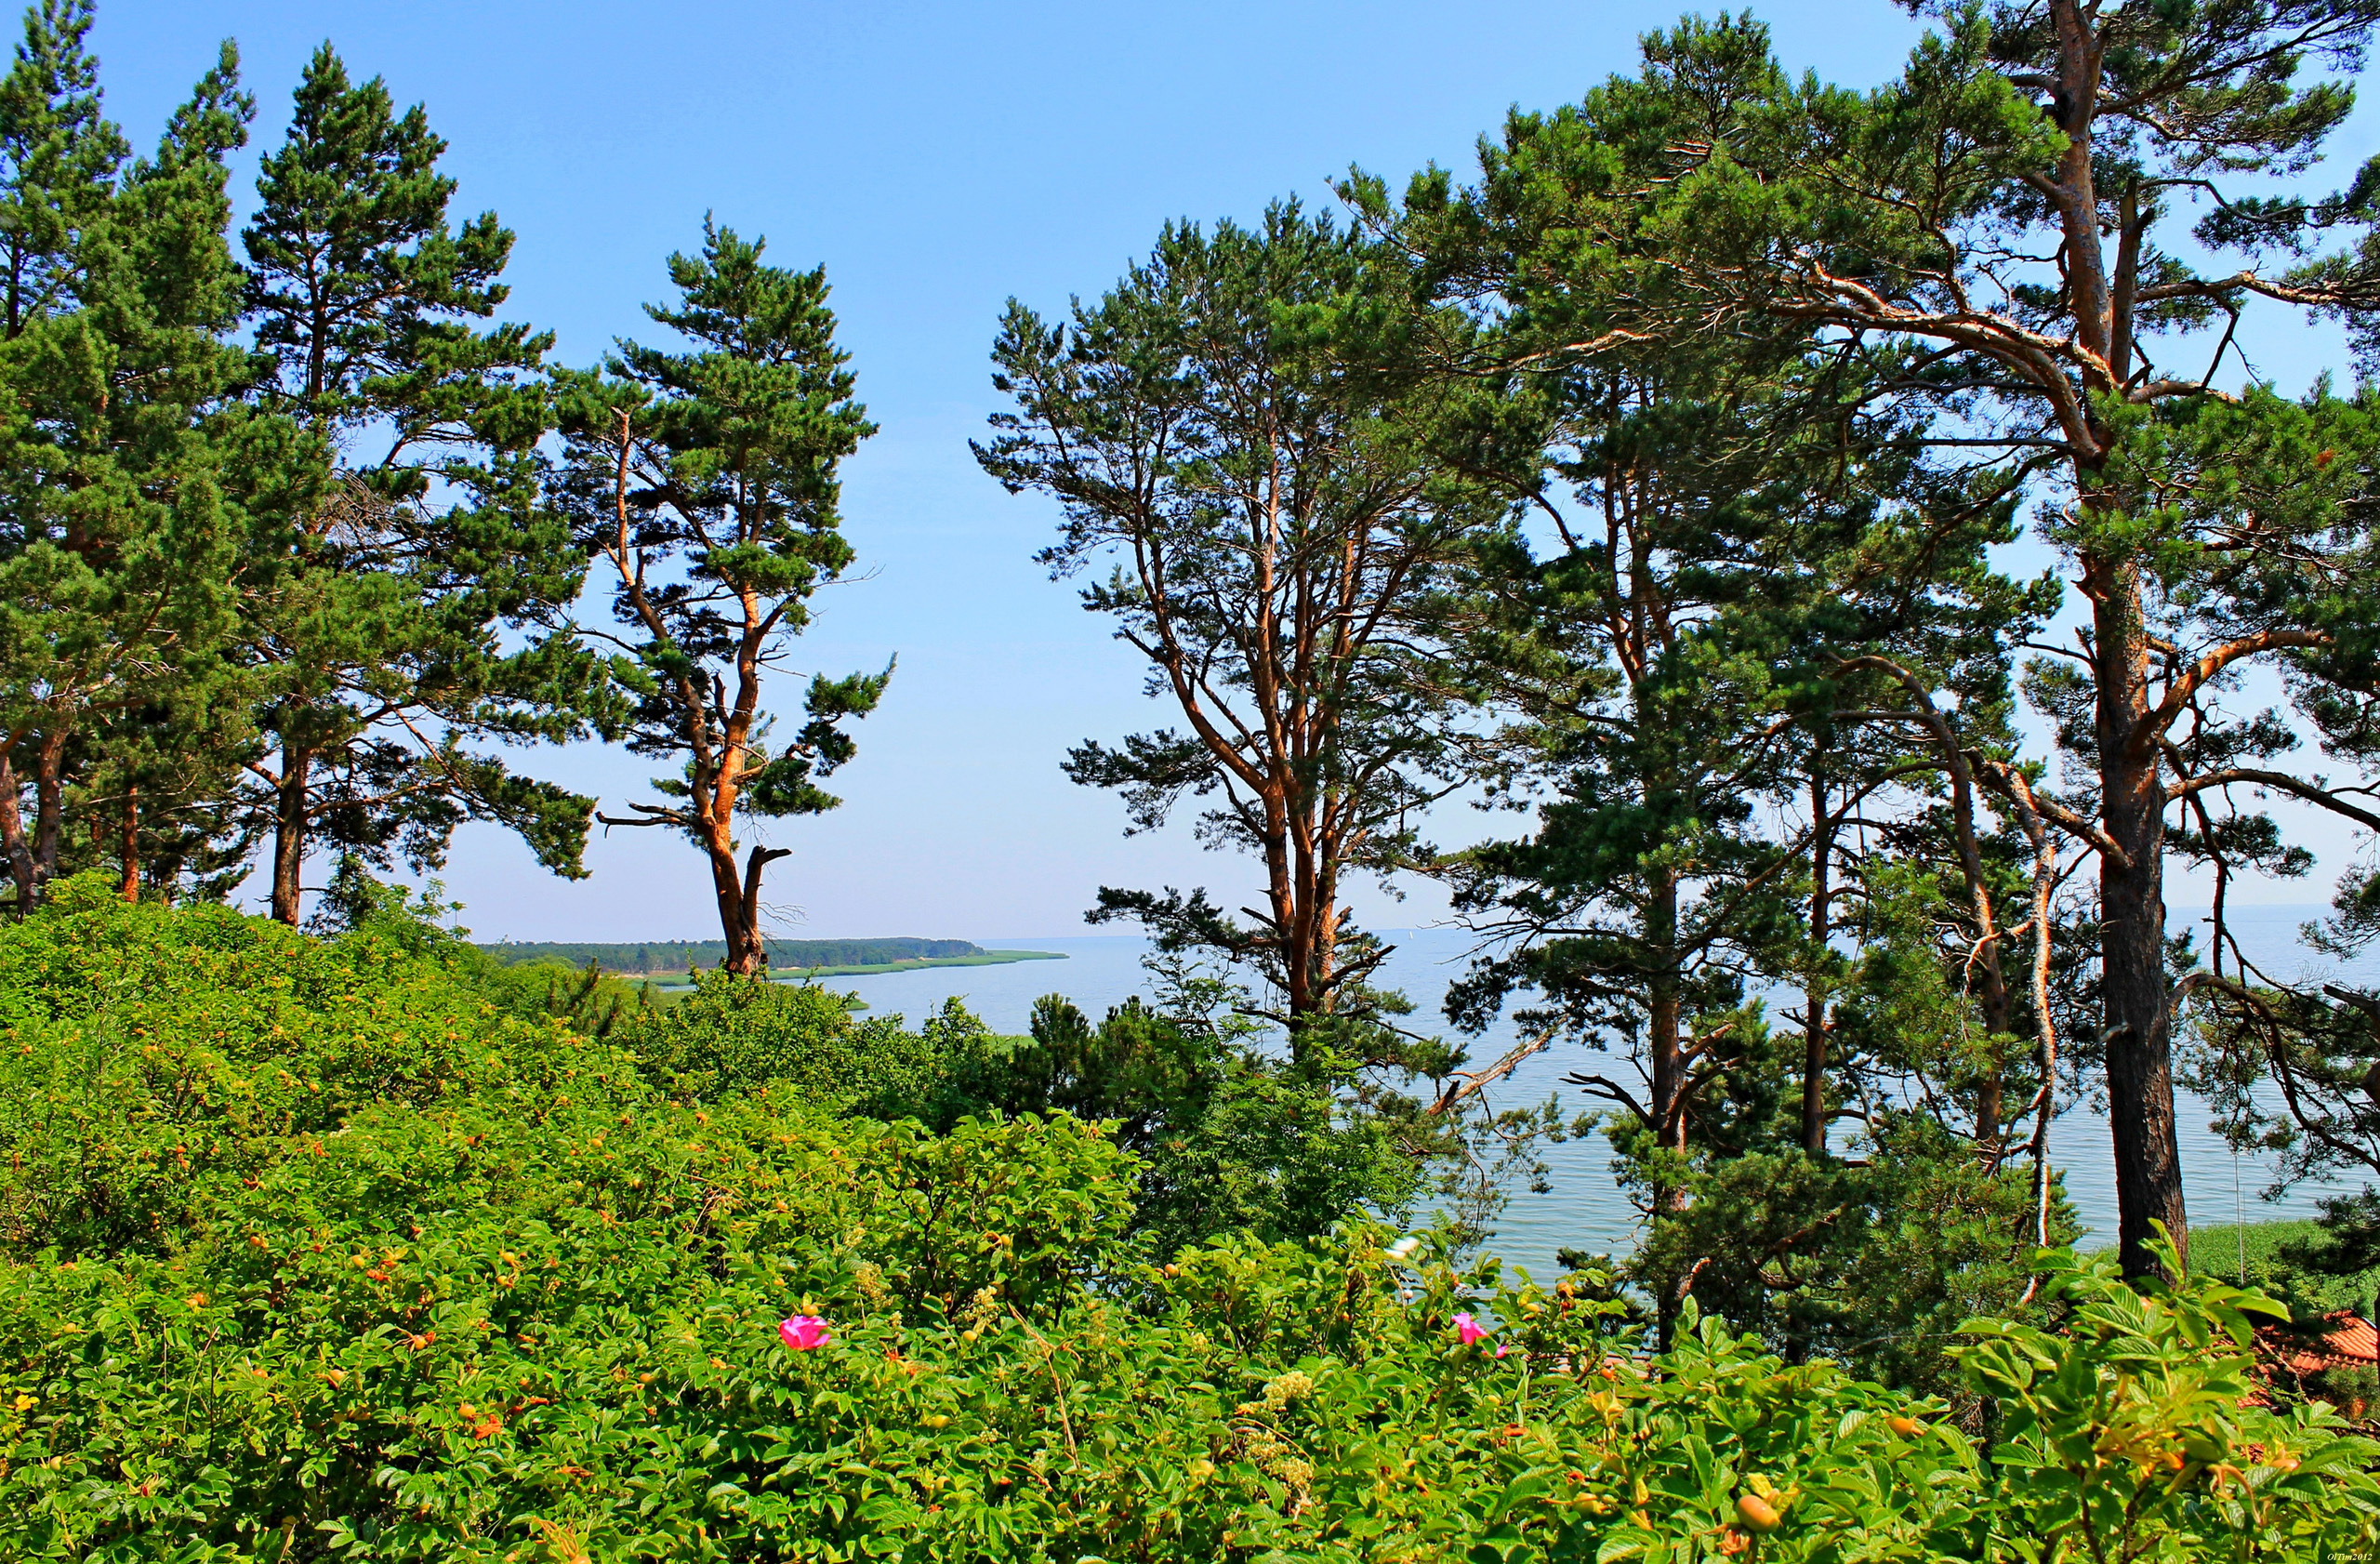 96527 download wallpaper Nature, Trees, Sea, Pine, Lithuania, Elevation screensavers and pictures for free